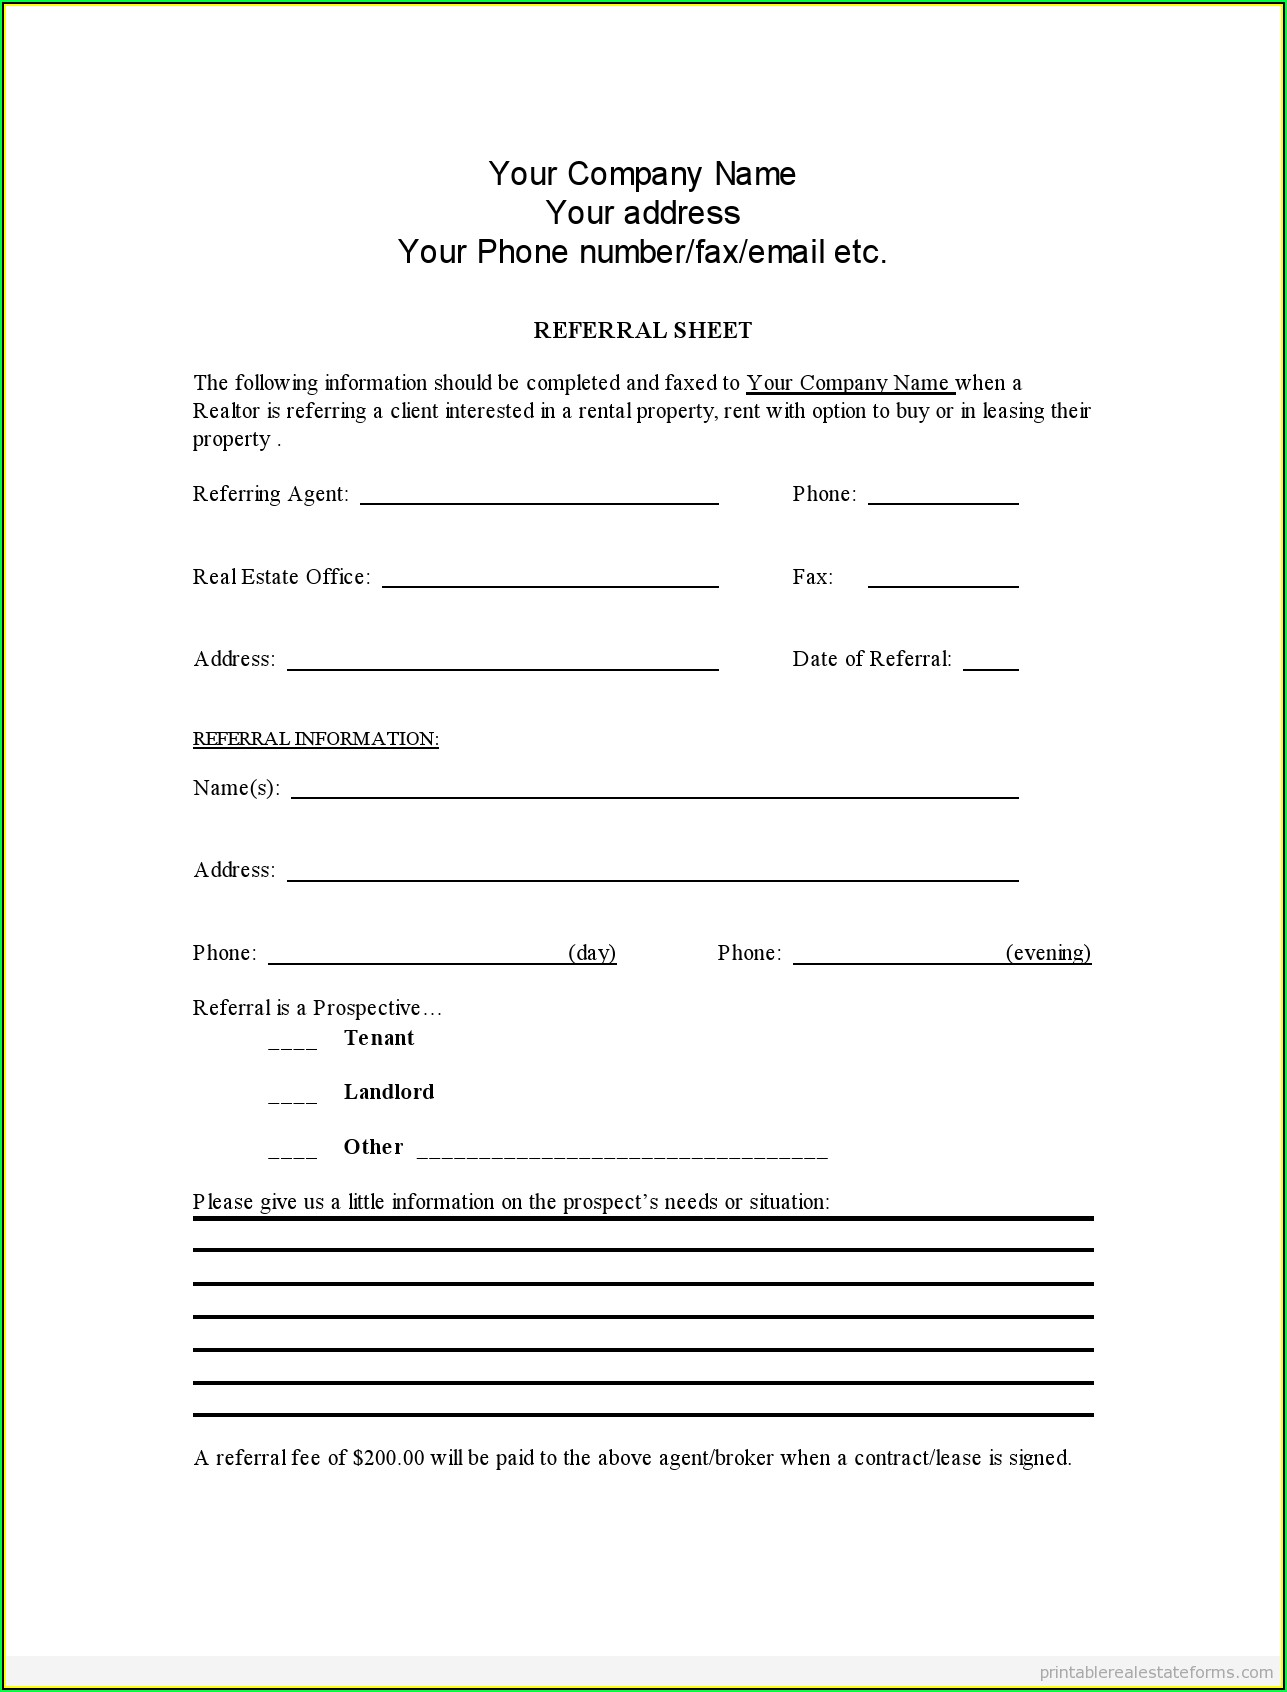 Real Estate Agent Referral Form Template